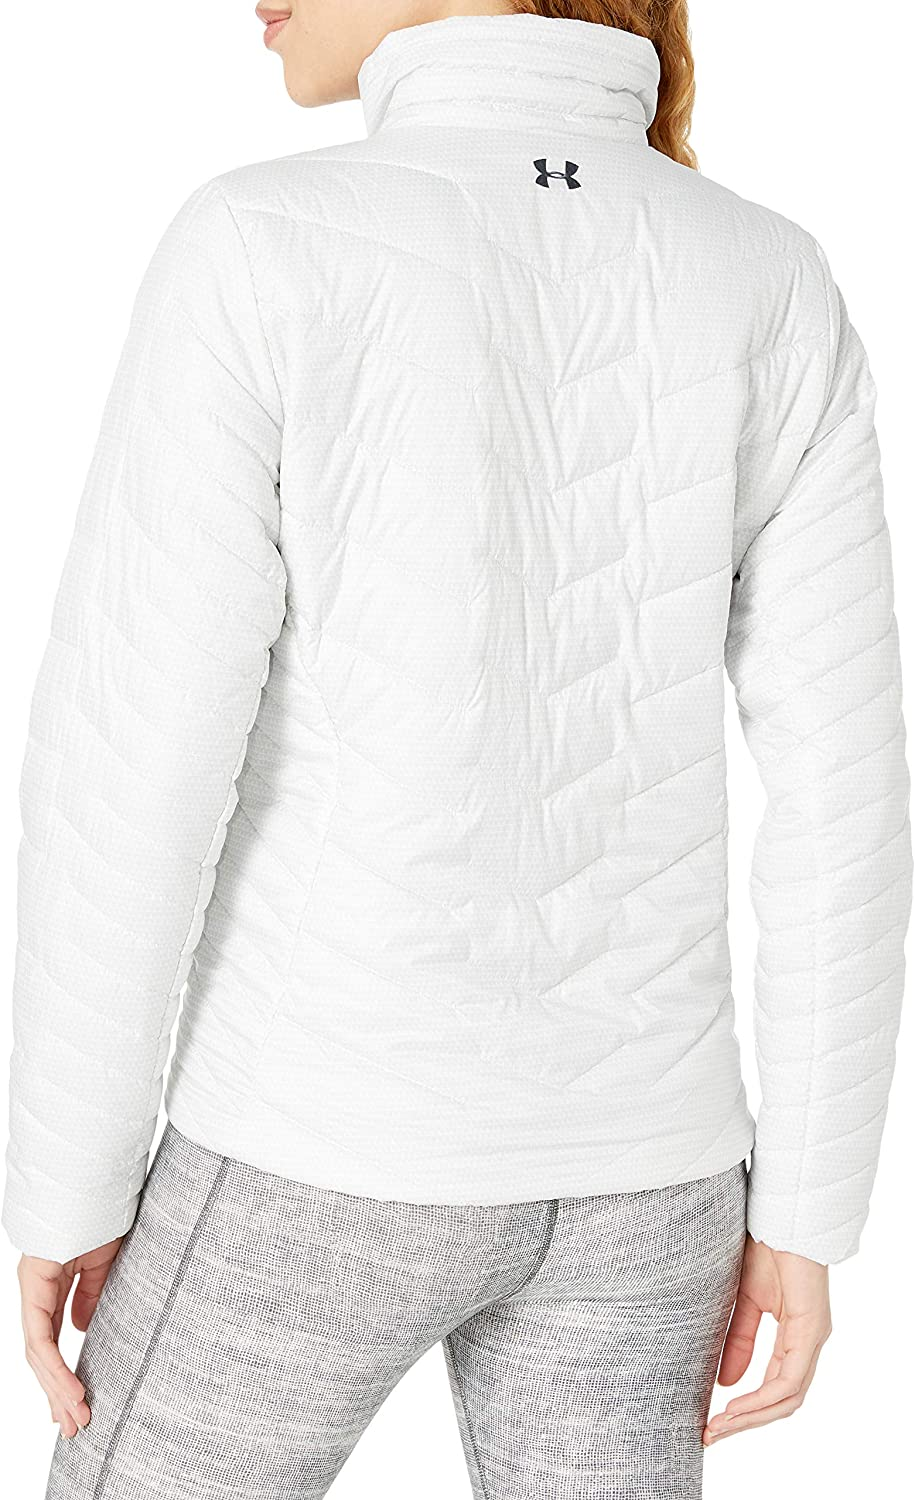 Womens Under Armour ColdGear Reactor Jacket,